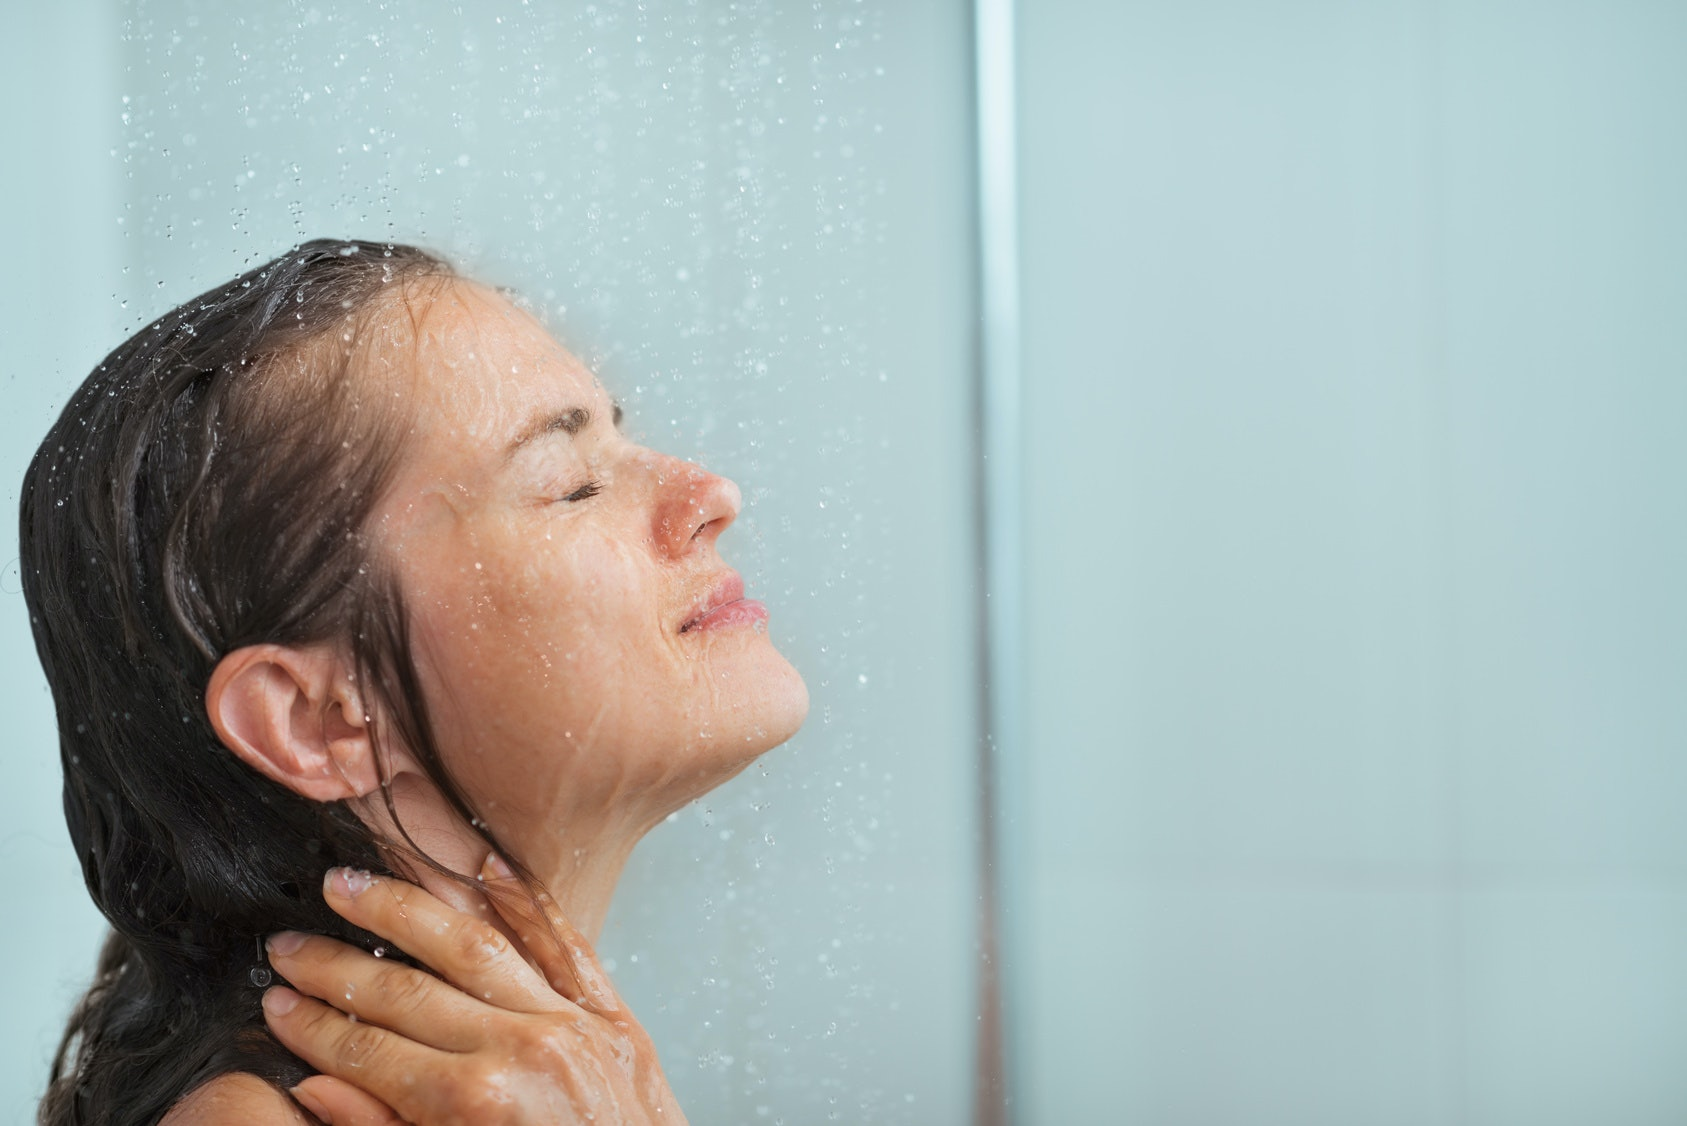 Sex things to try in shower pics